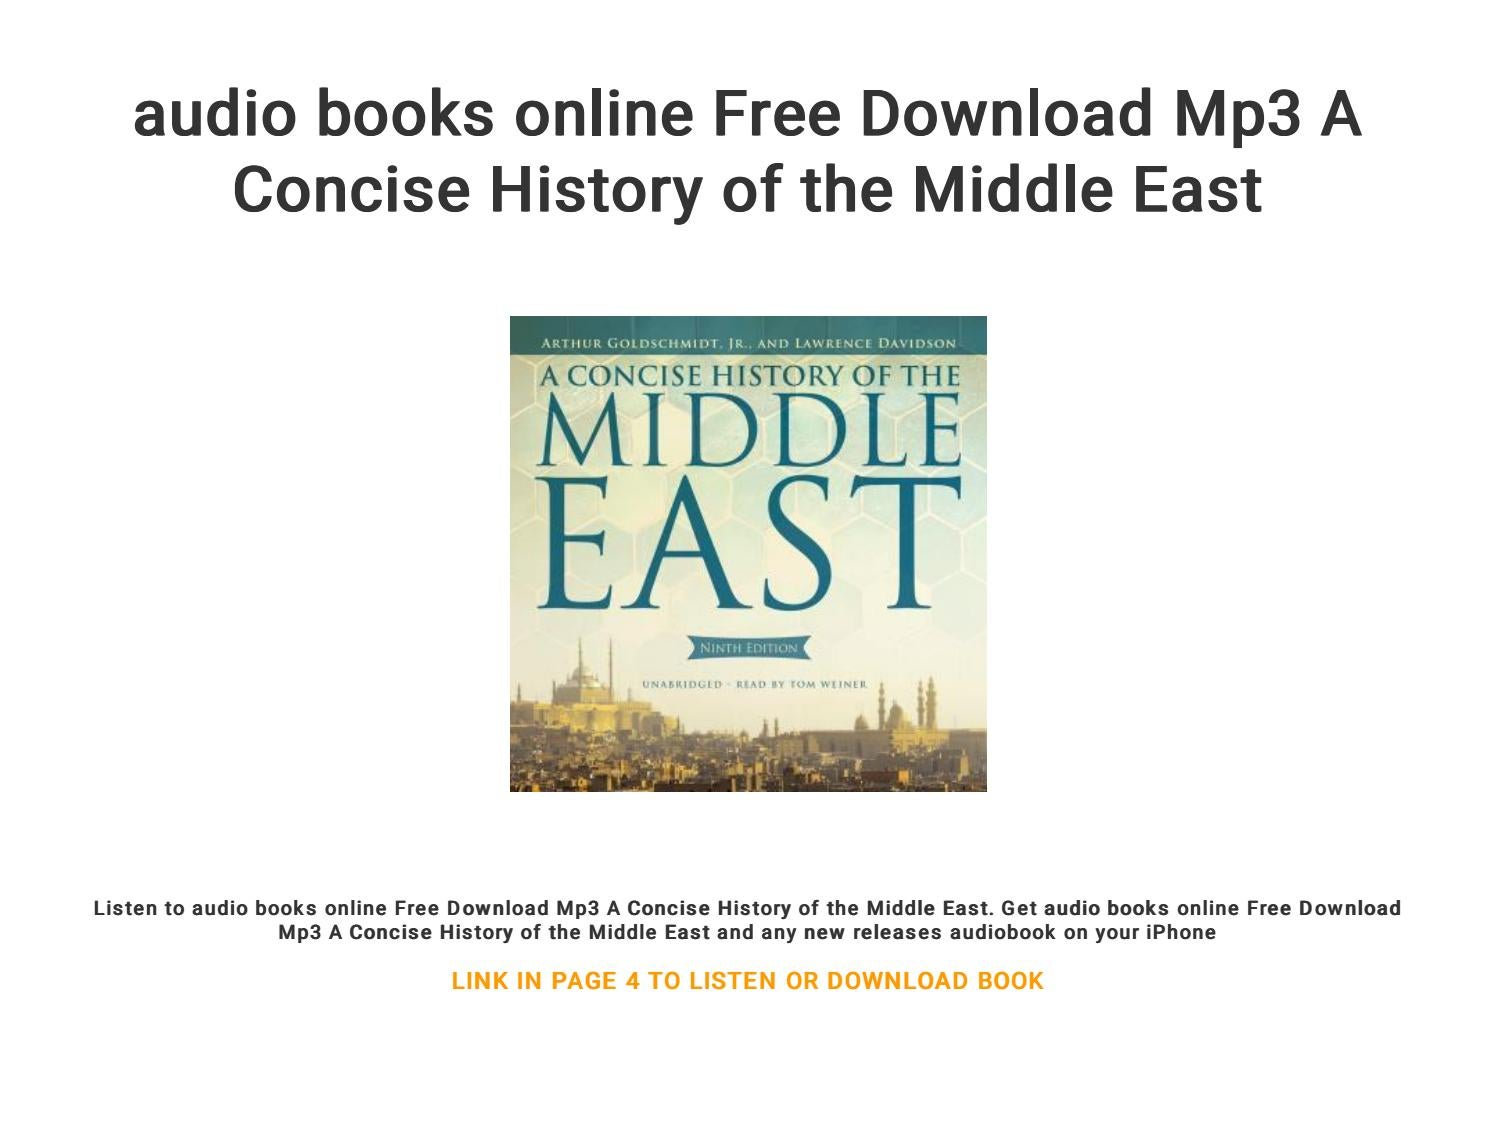 audio books online Free Download Mp3 A Concise History of the Middle East